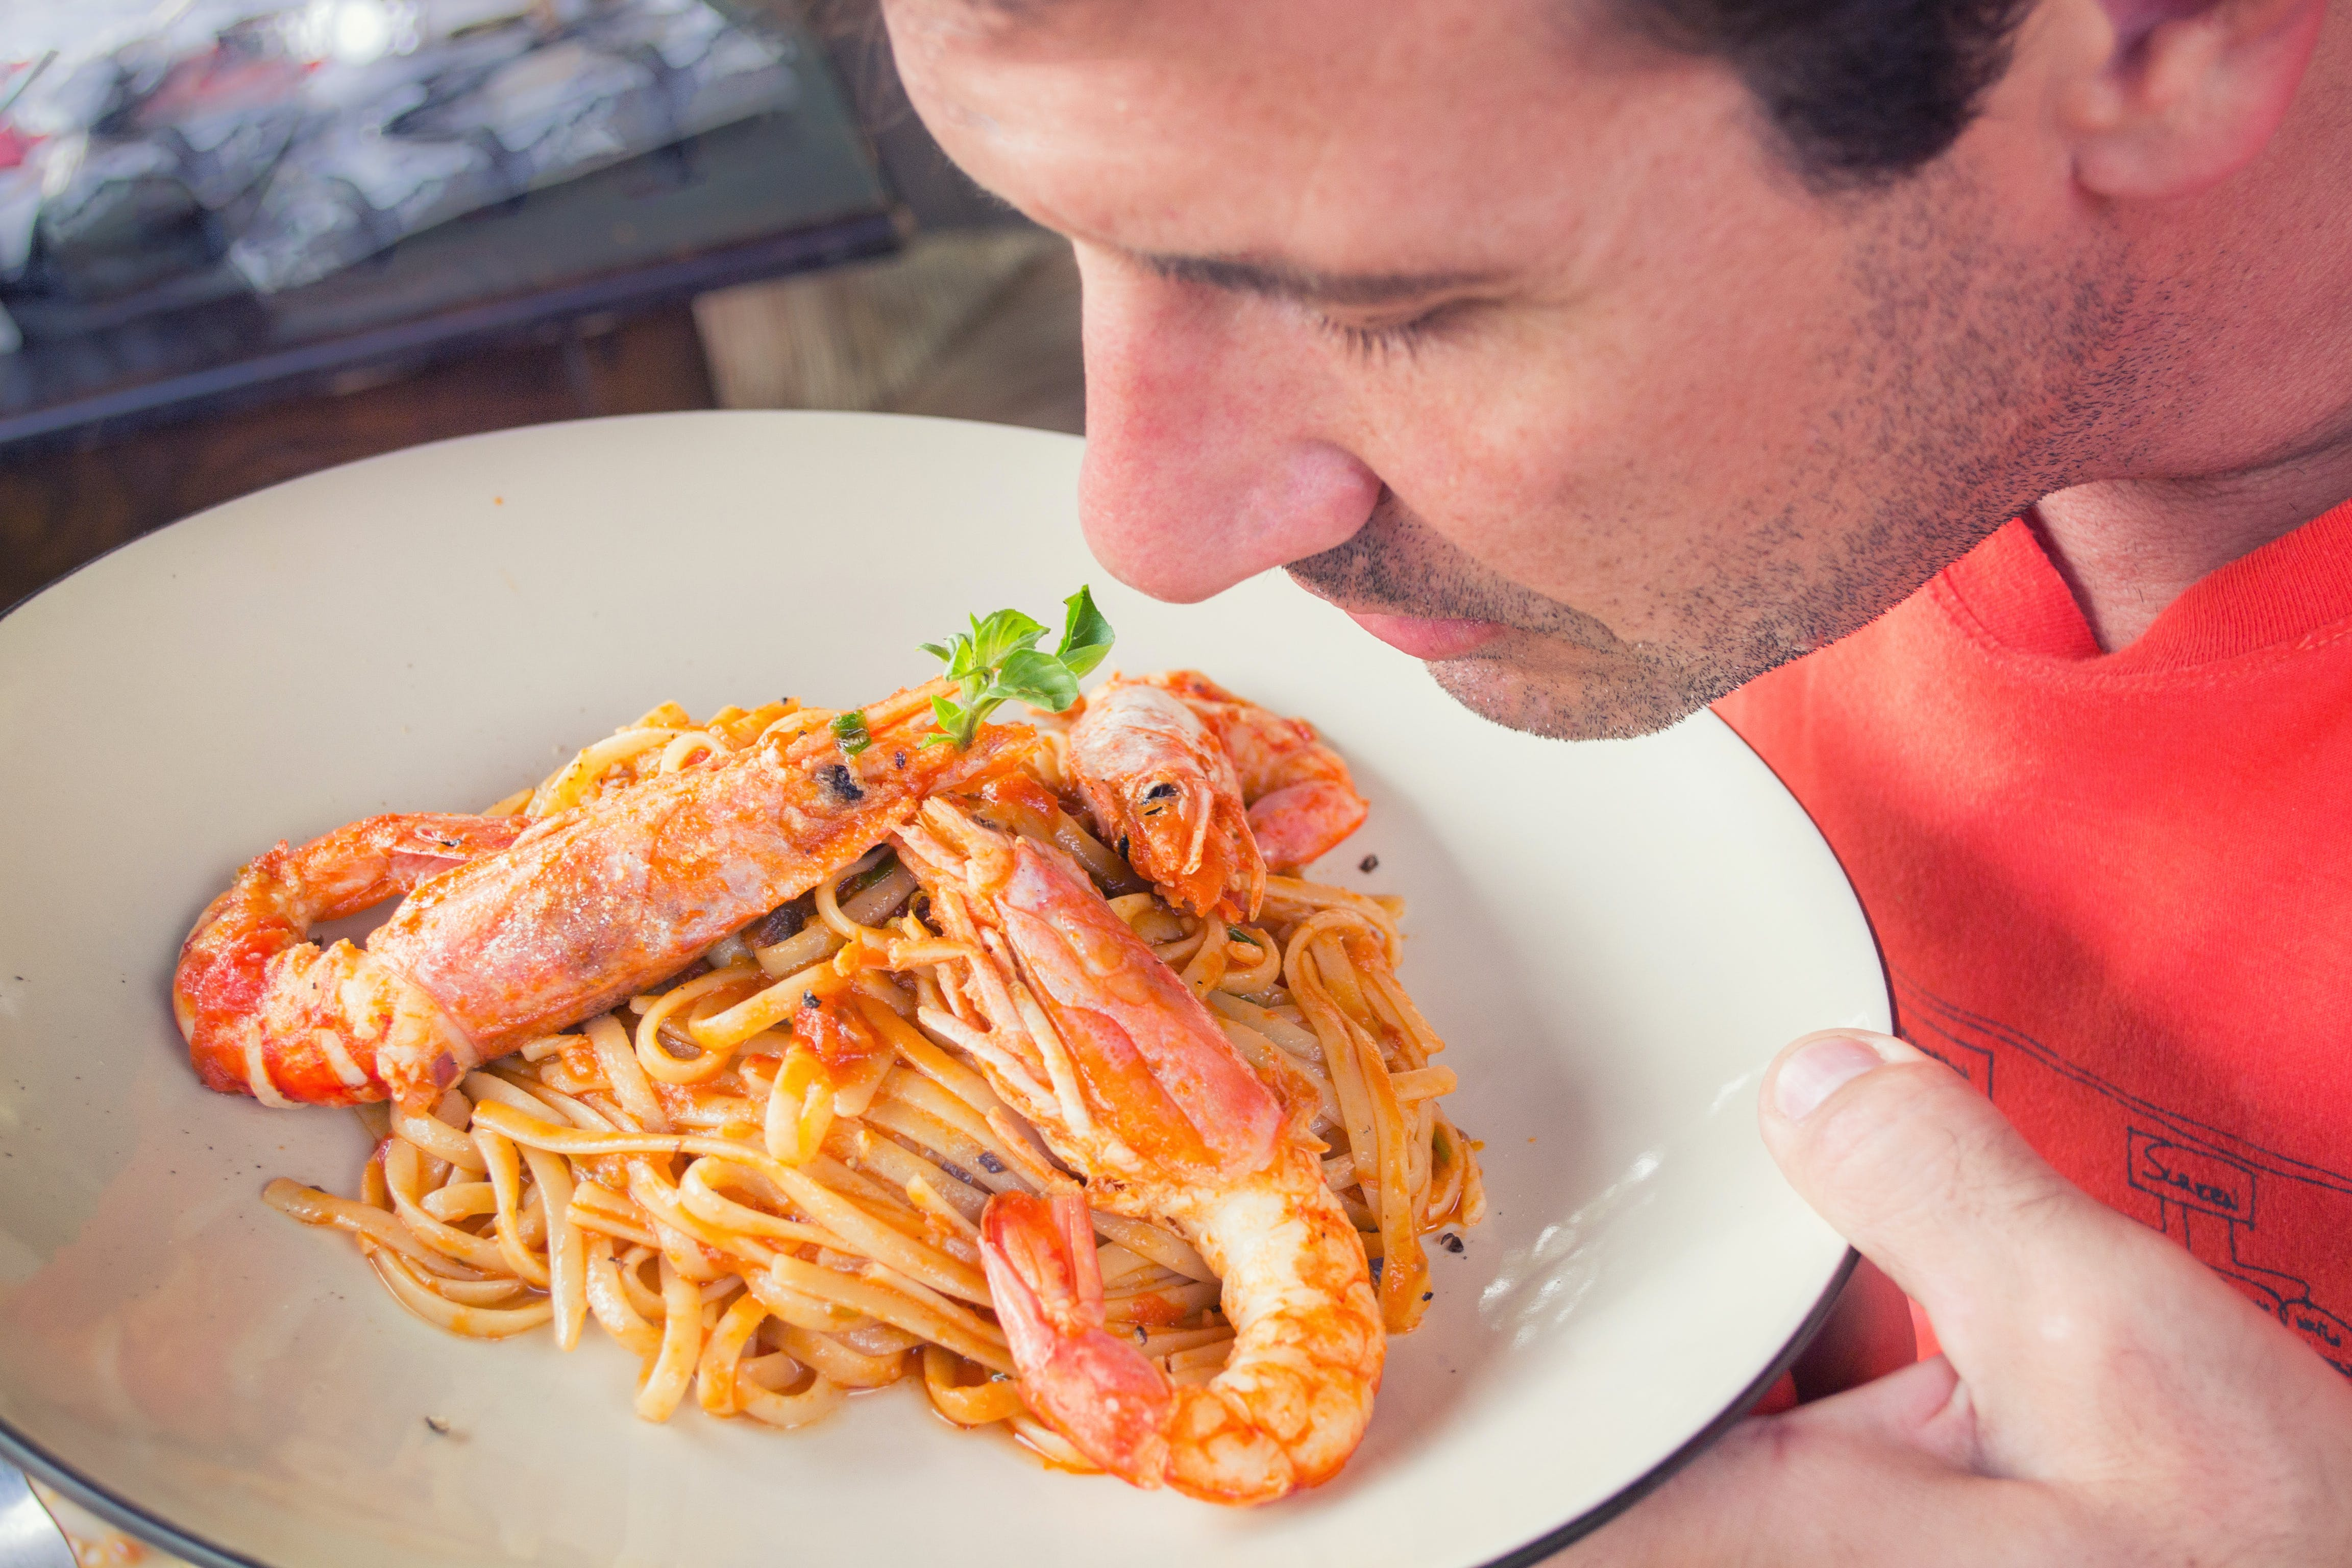 Man Smelling Prawn and Pasta Dish on White Ceramic Plate